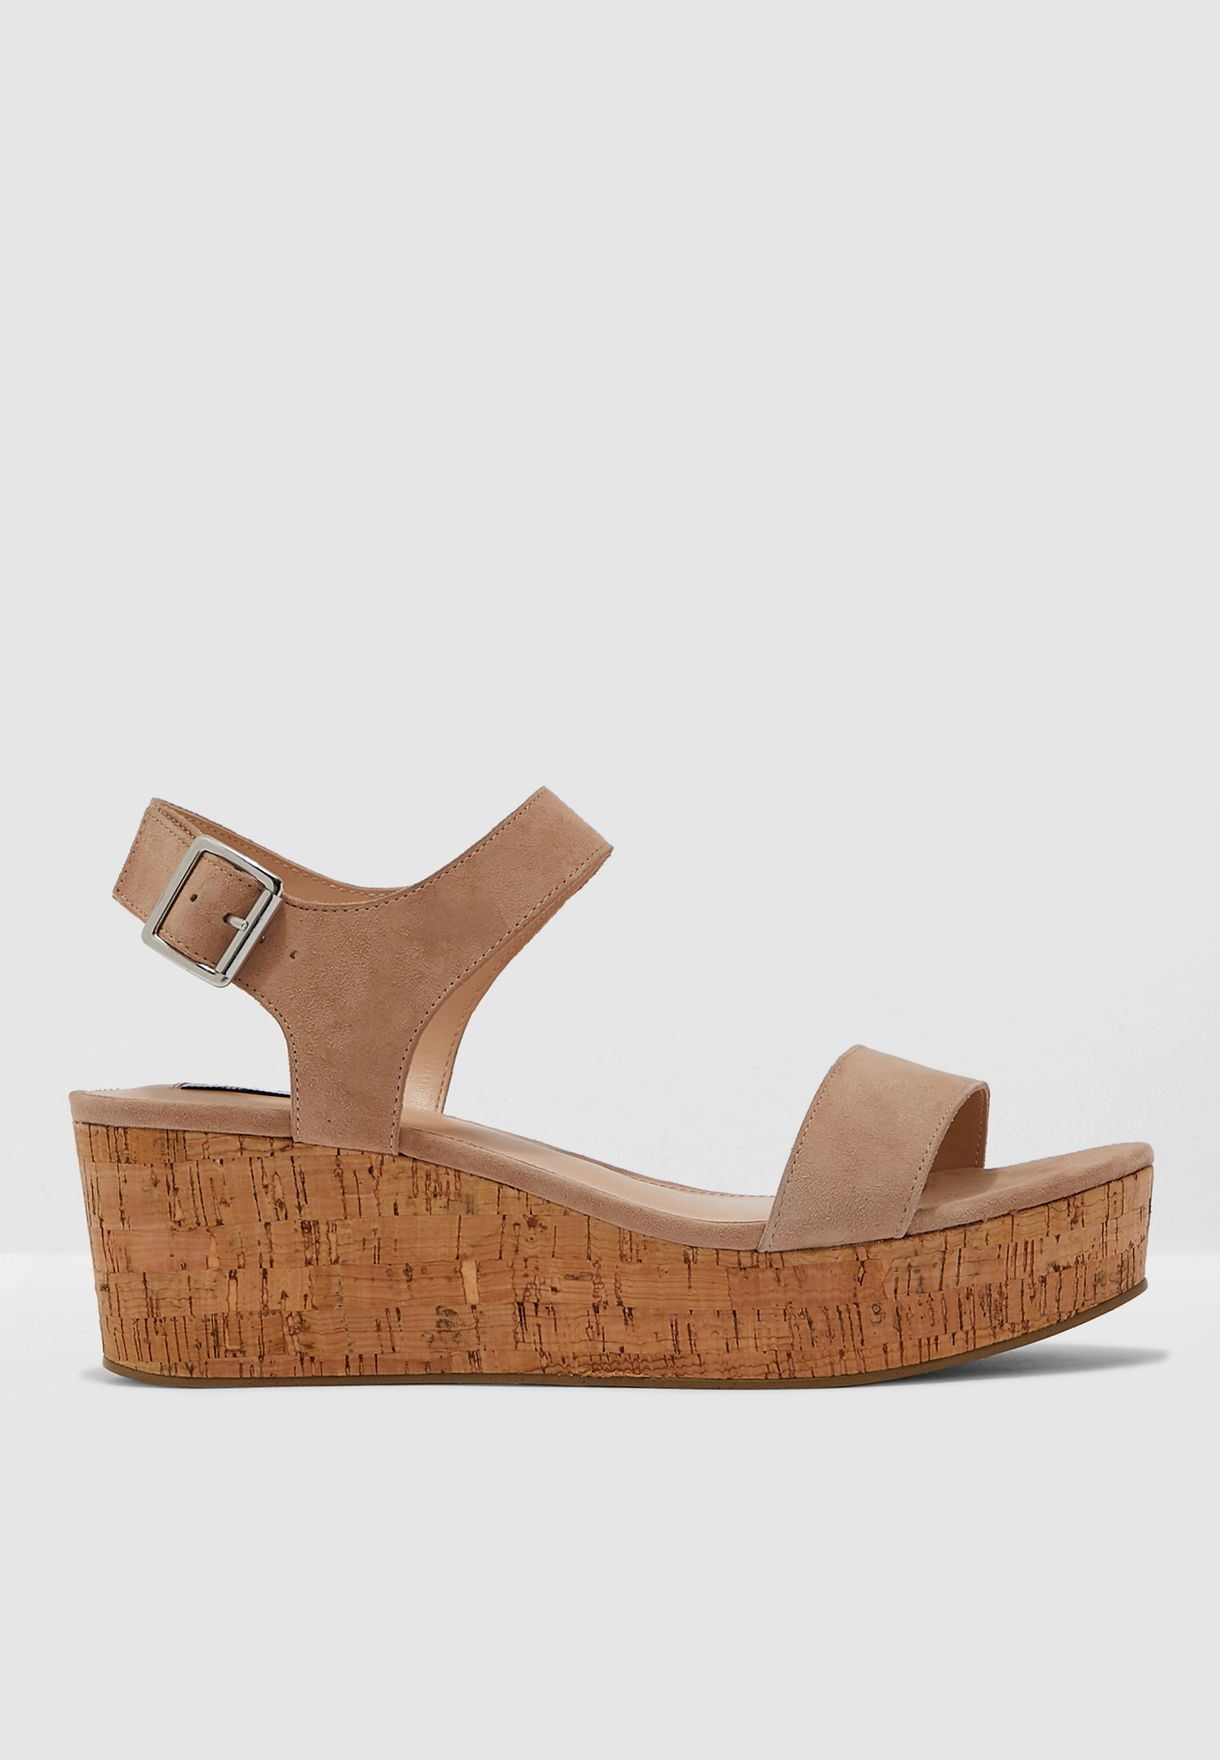 Breathe Sandal - Nude